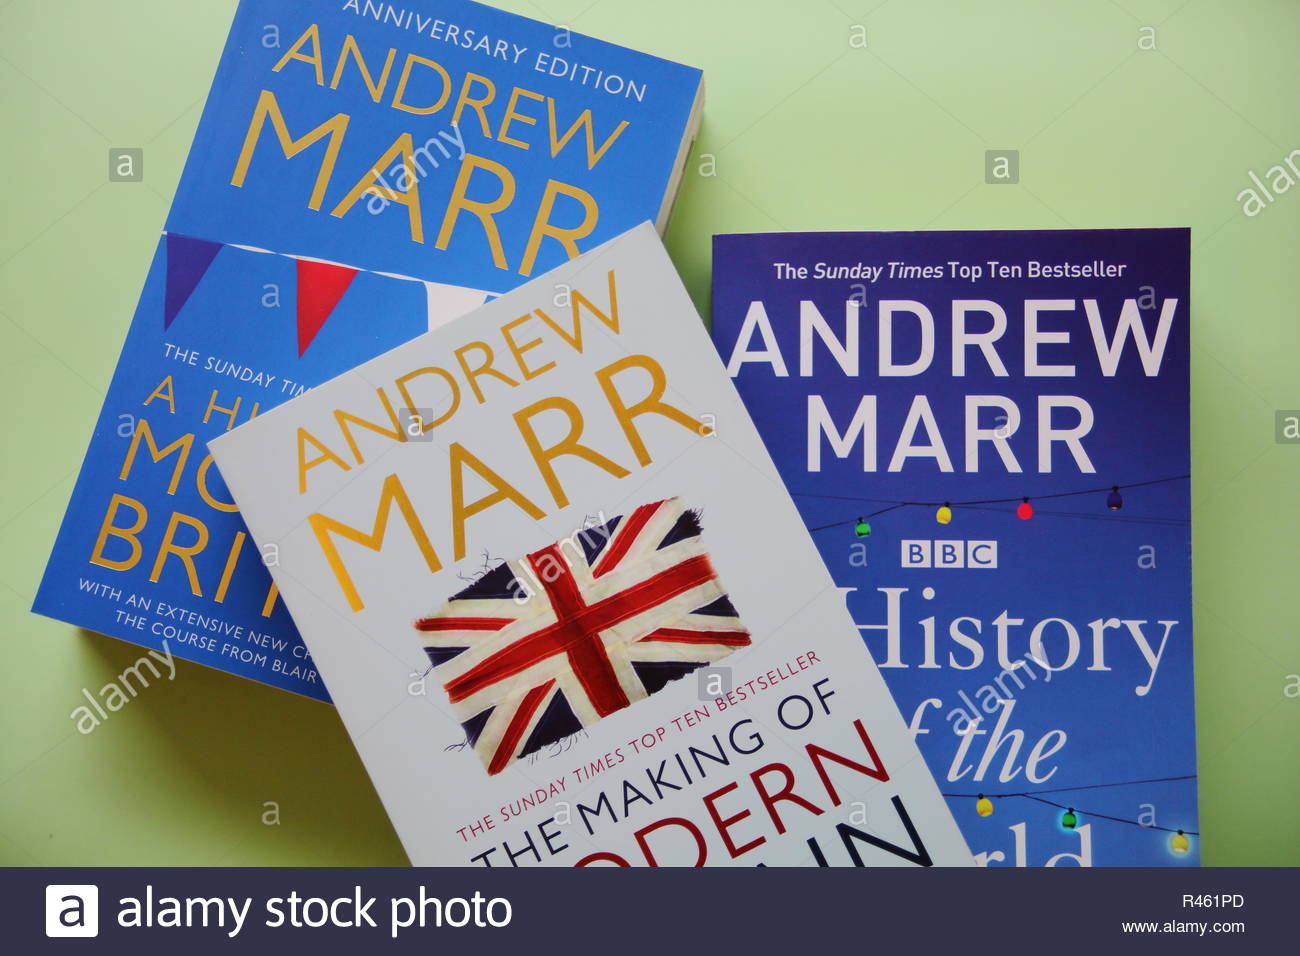 A selection of history books by Andrew Marr - Stock Image